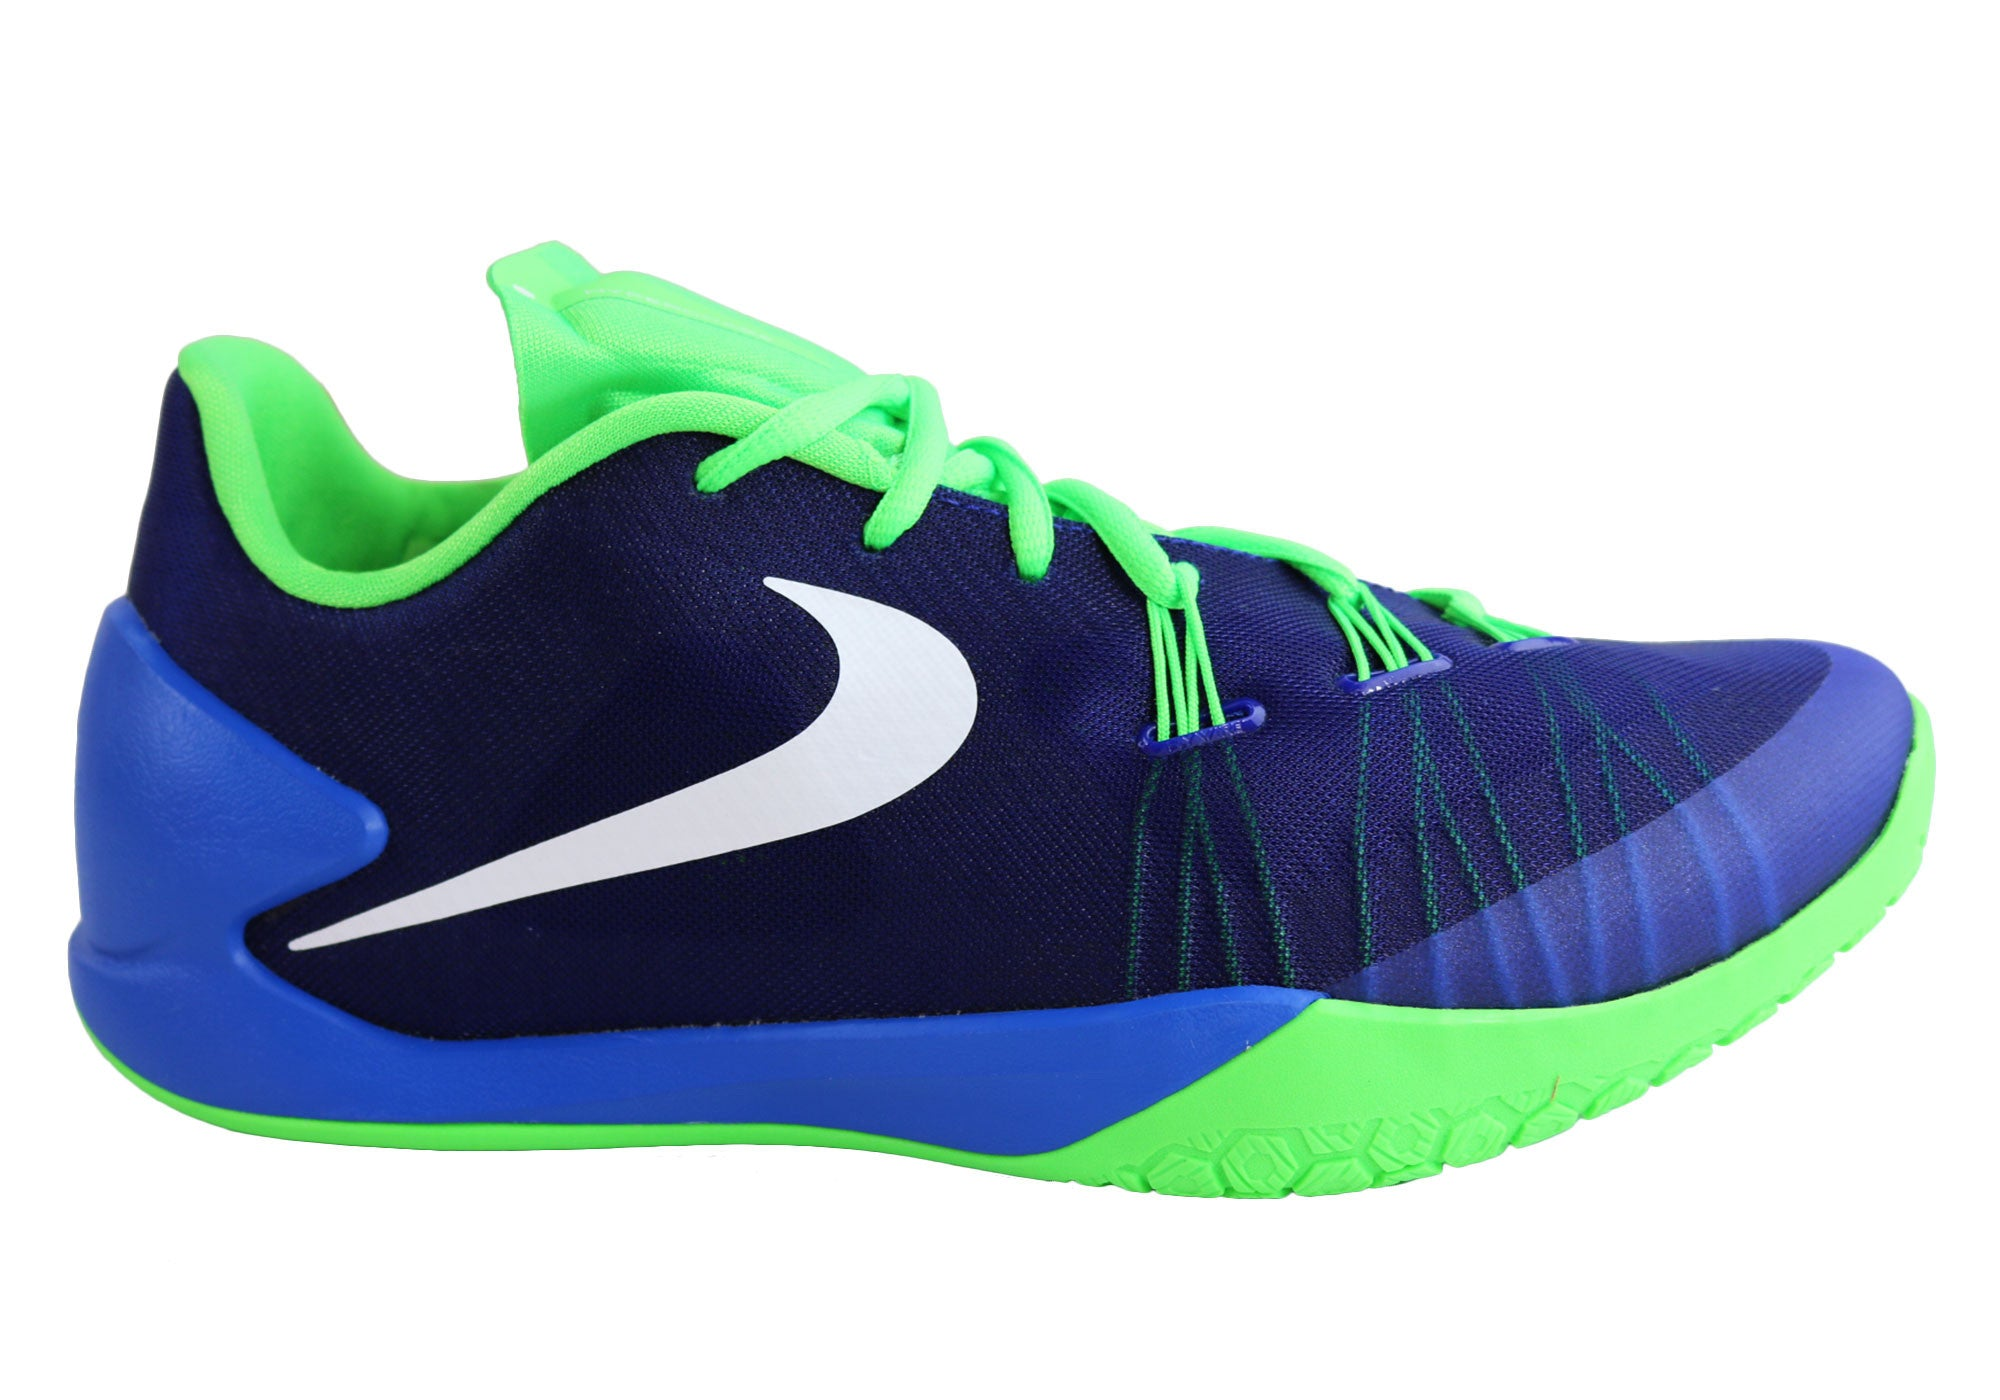 detailed look 2a528 08713 Home Nike Hyperchase Mens Trainers Basketball. Royal Blue  ...